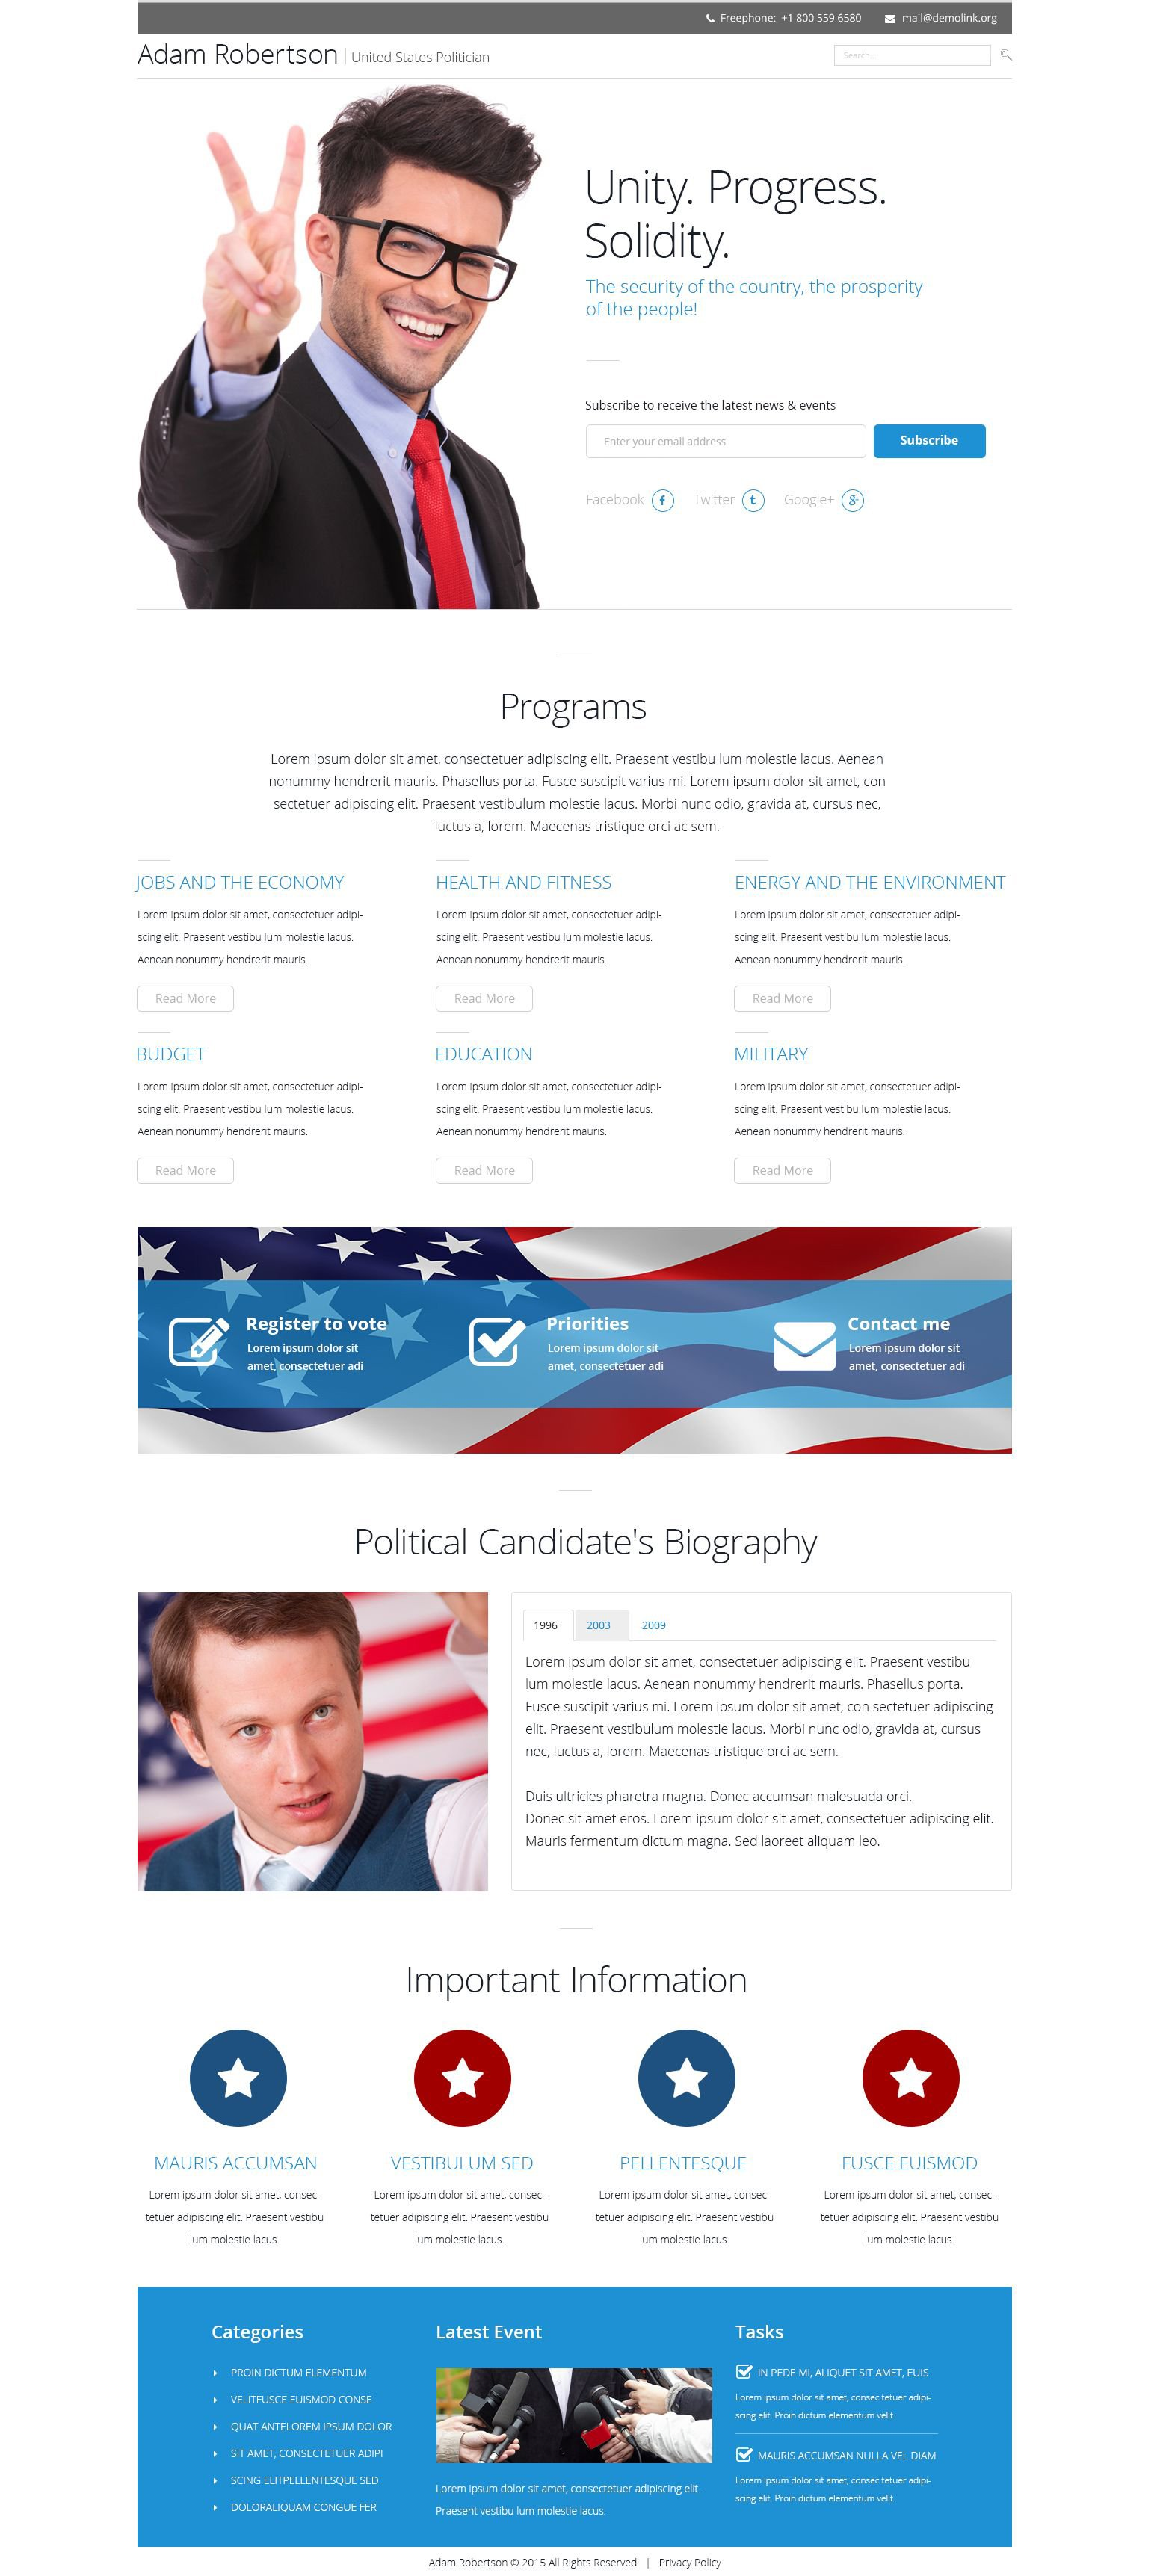 The Adam Robertson Politician Landing Page Template Design 53427, one of the best Landing Page templates of its kind (politics, most popular), also known as Adam Robertson politician Landing Page template, political organization Landing Page template, leader Landing Page template, chairman Landing Page template, campaign Landing Page template, constitution Landing Page template, member Landing Page template, principles Landing Page template, information Landing Page template, donation Landing Page template, platform Landing Page template, flag Landing Page template, candidates Landing Page template, debates Landing Page template, structure Landing Page template, election Landing Page template, program Landing Page template, priority and related with Adam Robertson politician, political organization, leader, chairman, campaign, constitution, member, principles, information, donation, platform, flag, candidates, debates, structure, election, program, priority, etc.